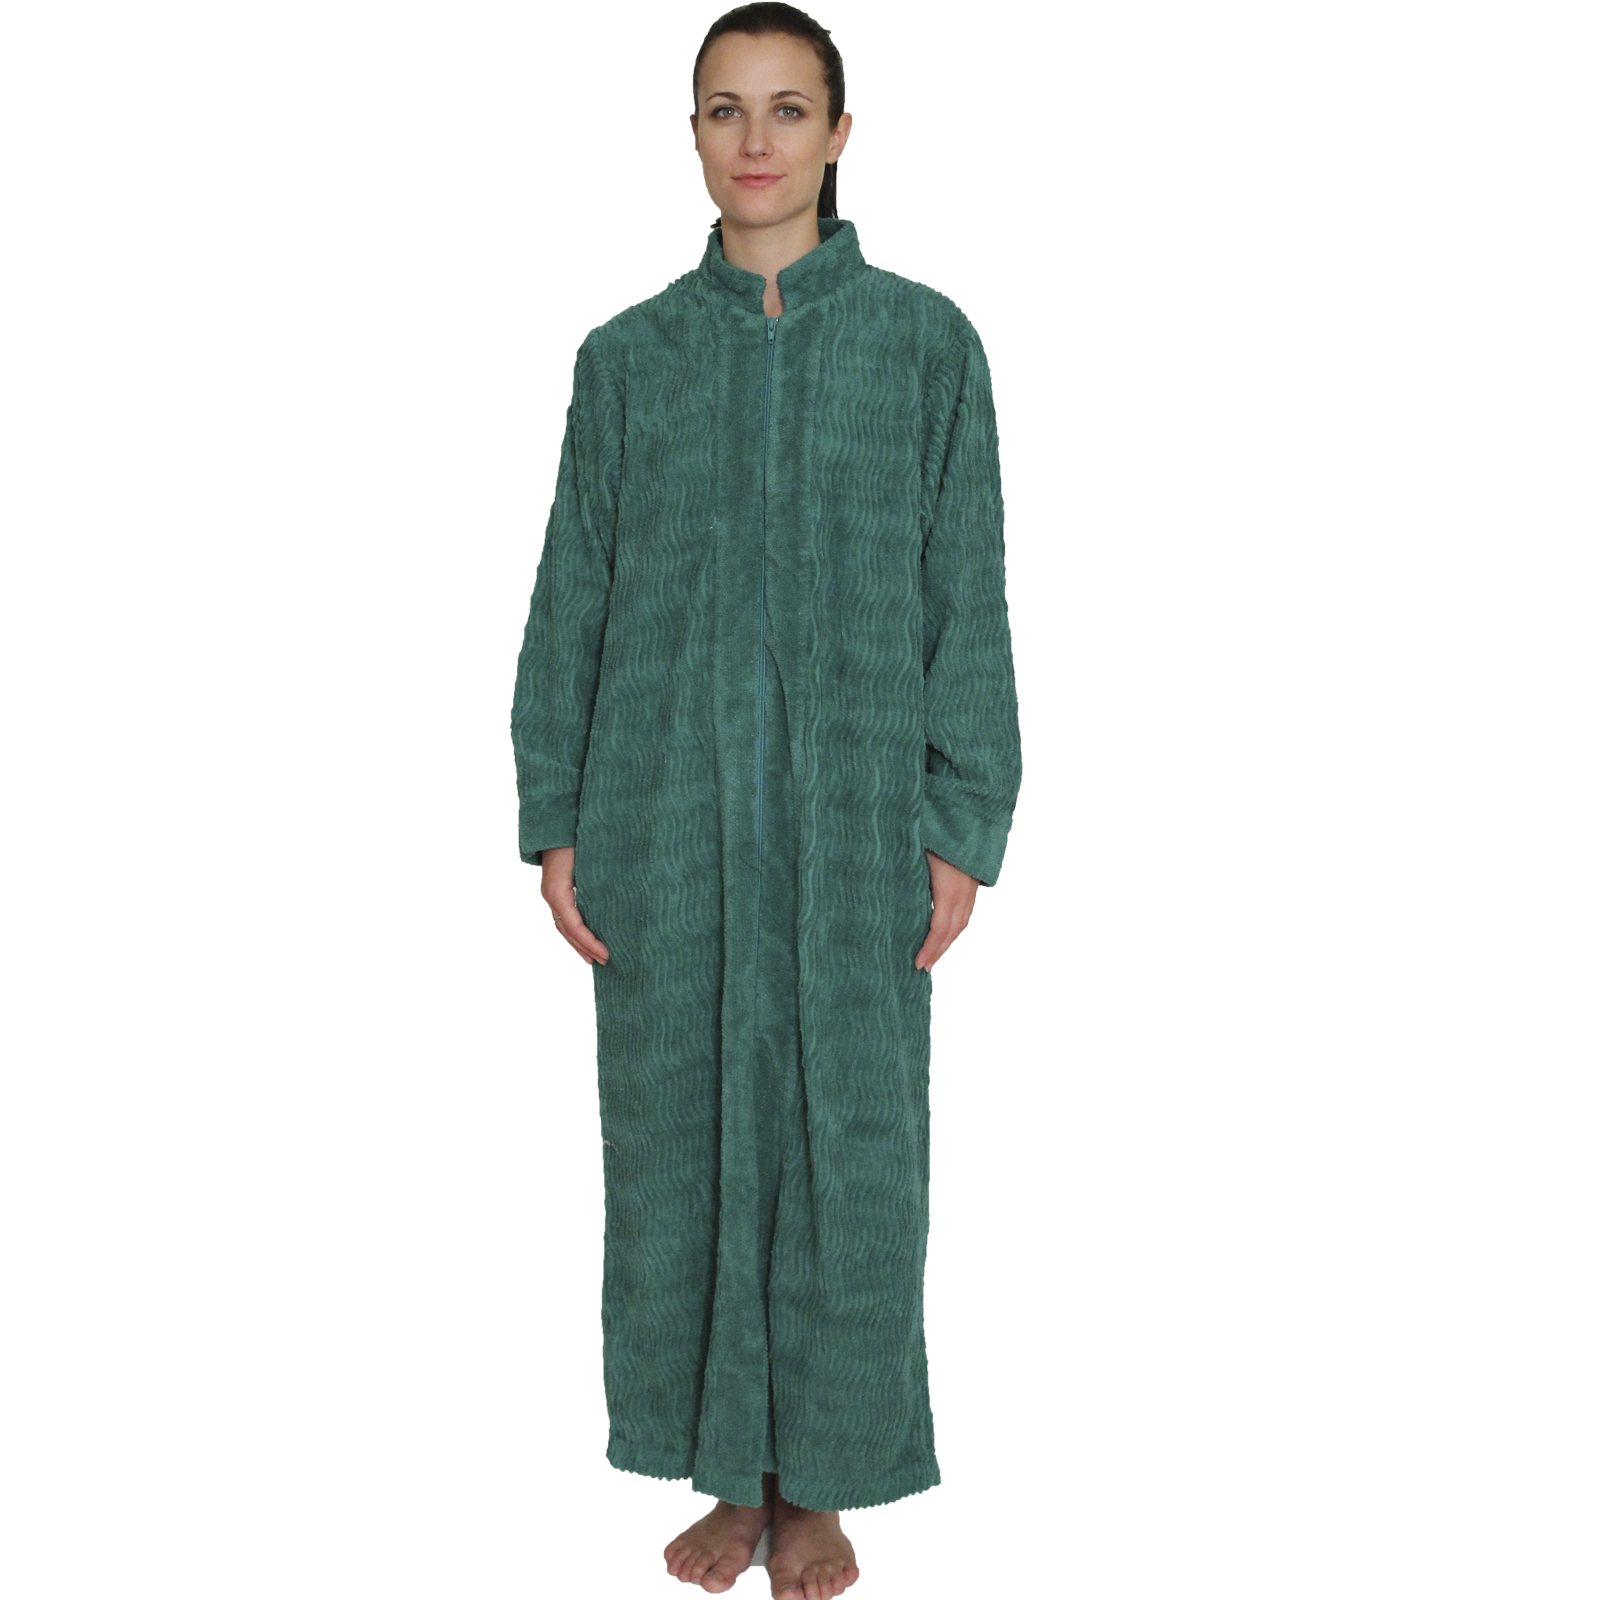 Full Length Chenille Robe With Zip Front